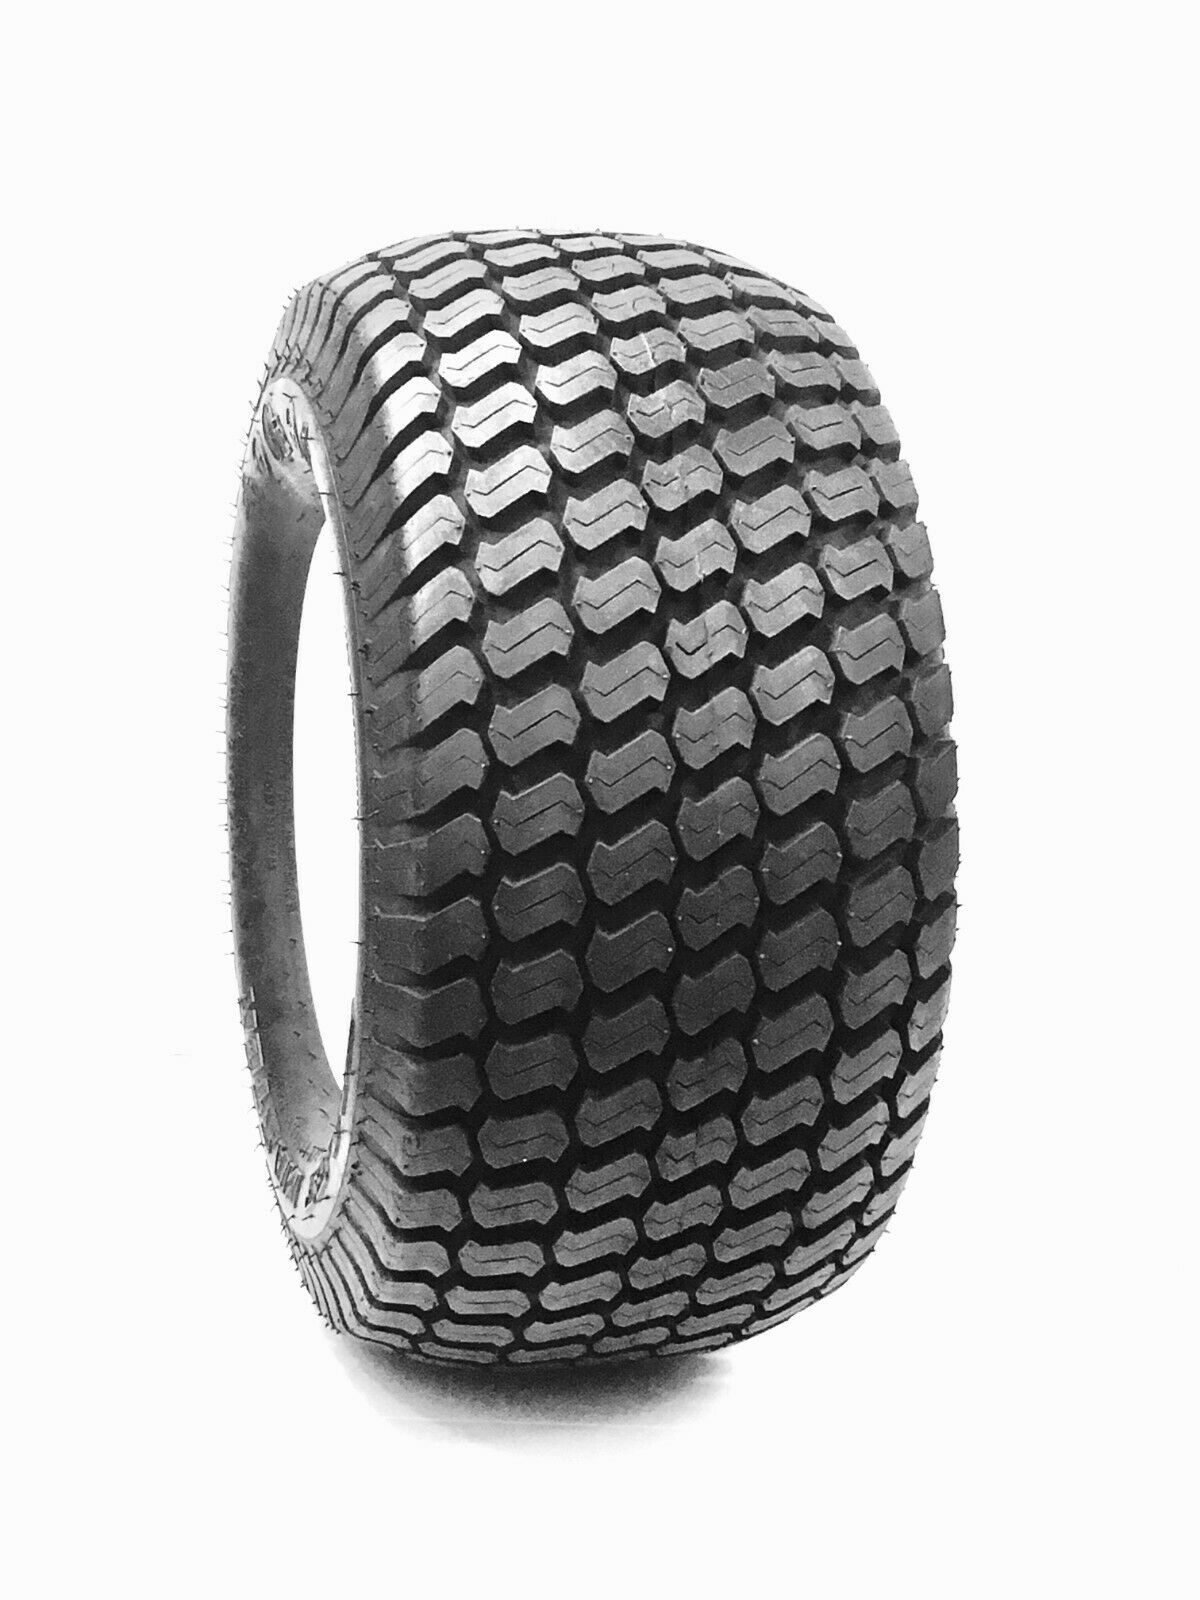 Turf Lawn Mower 22X10.00-10 Tires 22x10.00X10 22-10-10 4Ply Tires Litefoot